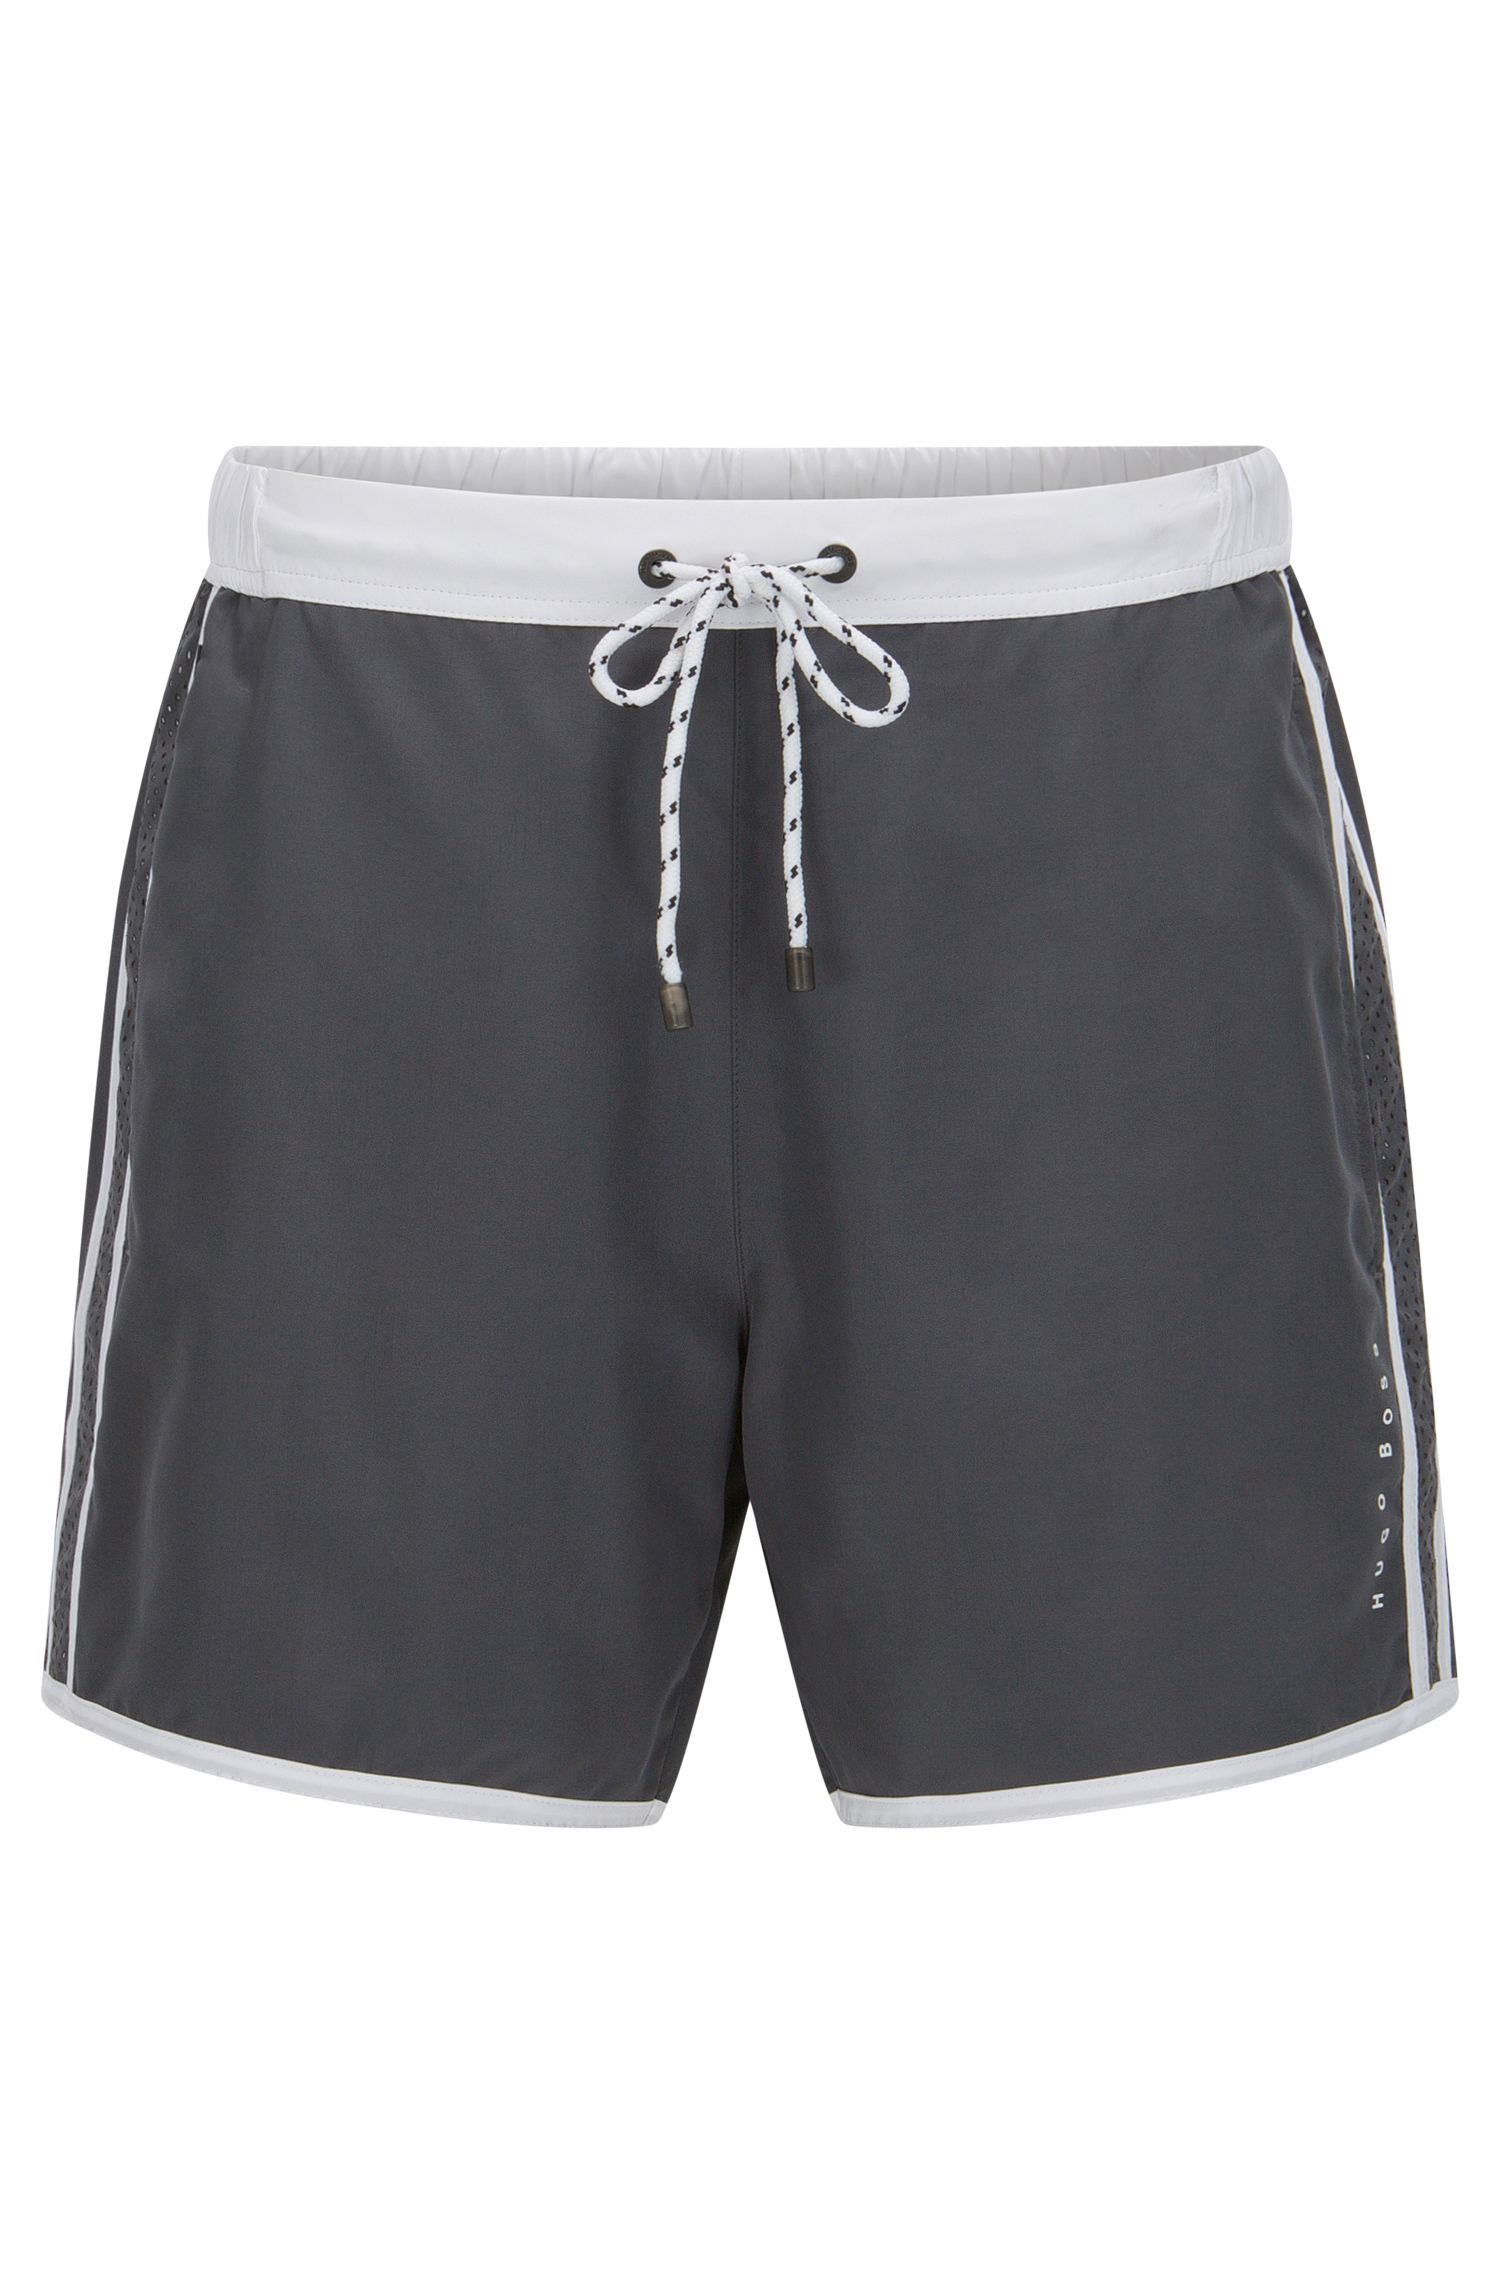 Technical-fabric swim shorts with contrast piping